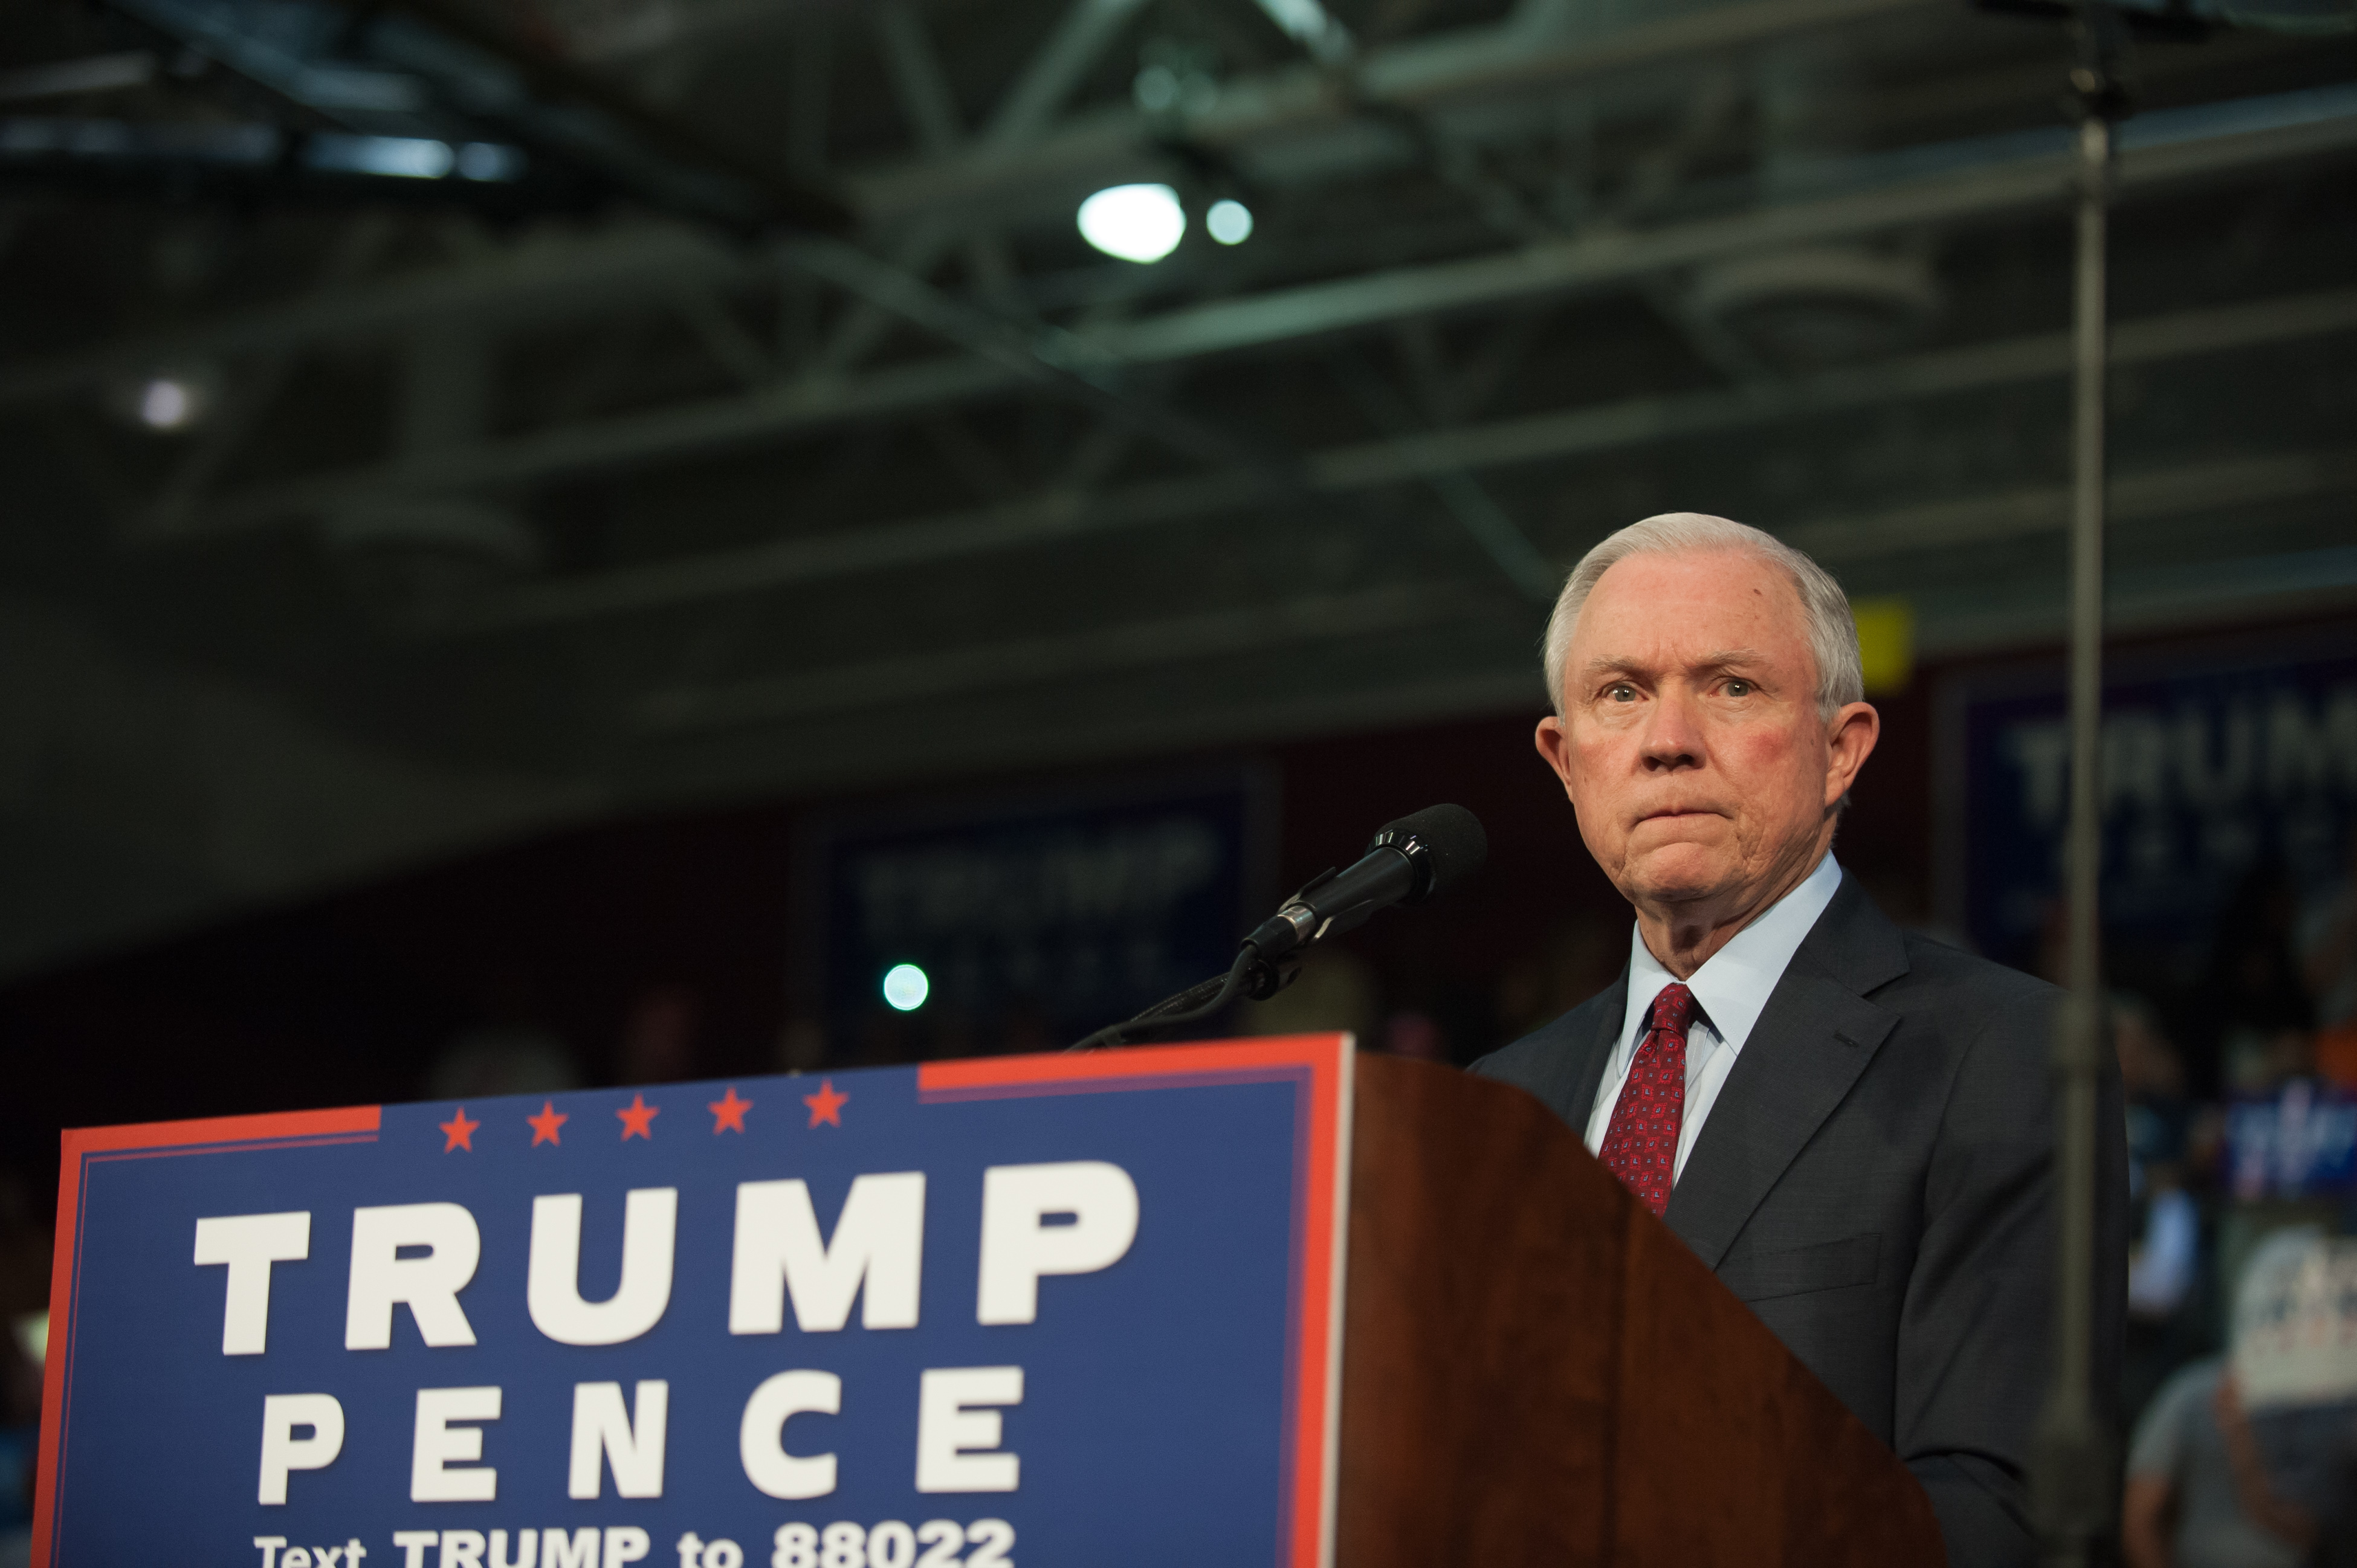 Jeff Sessions, Trump's attorney general, will be a massive setback ...